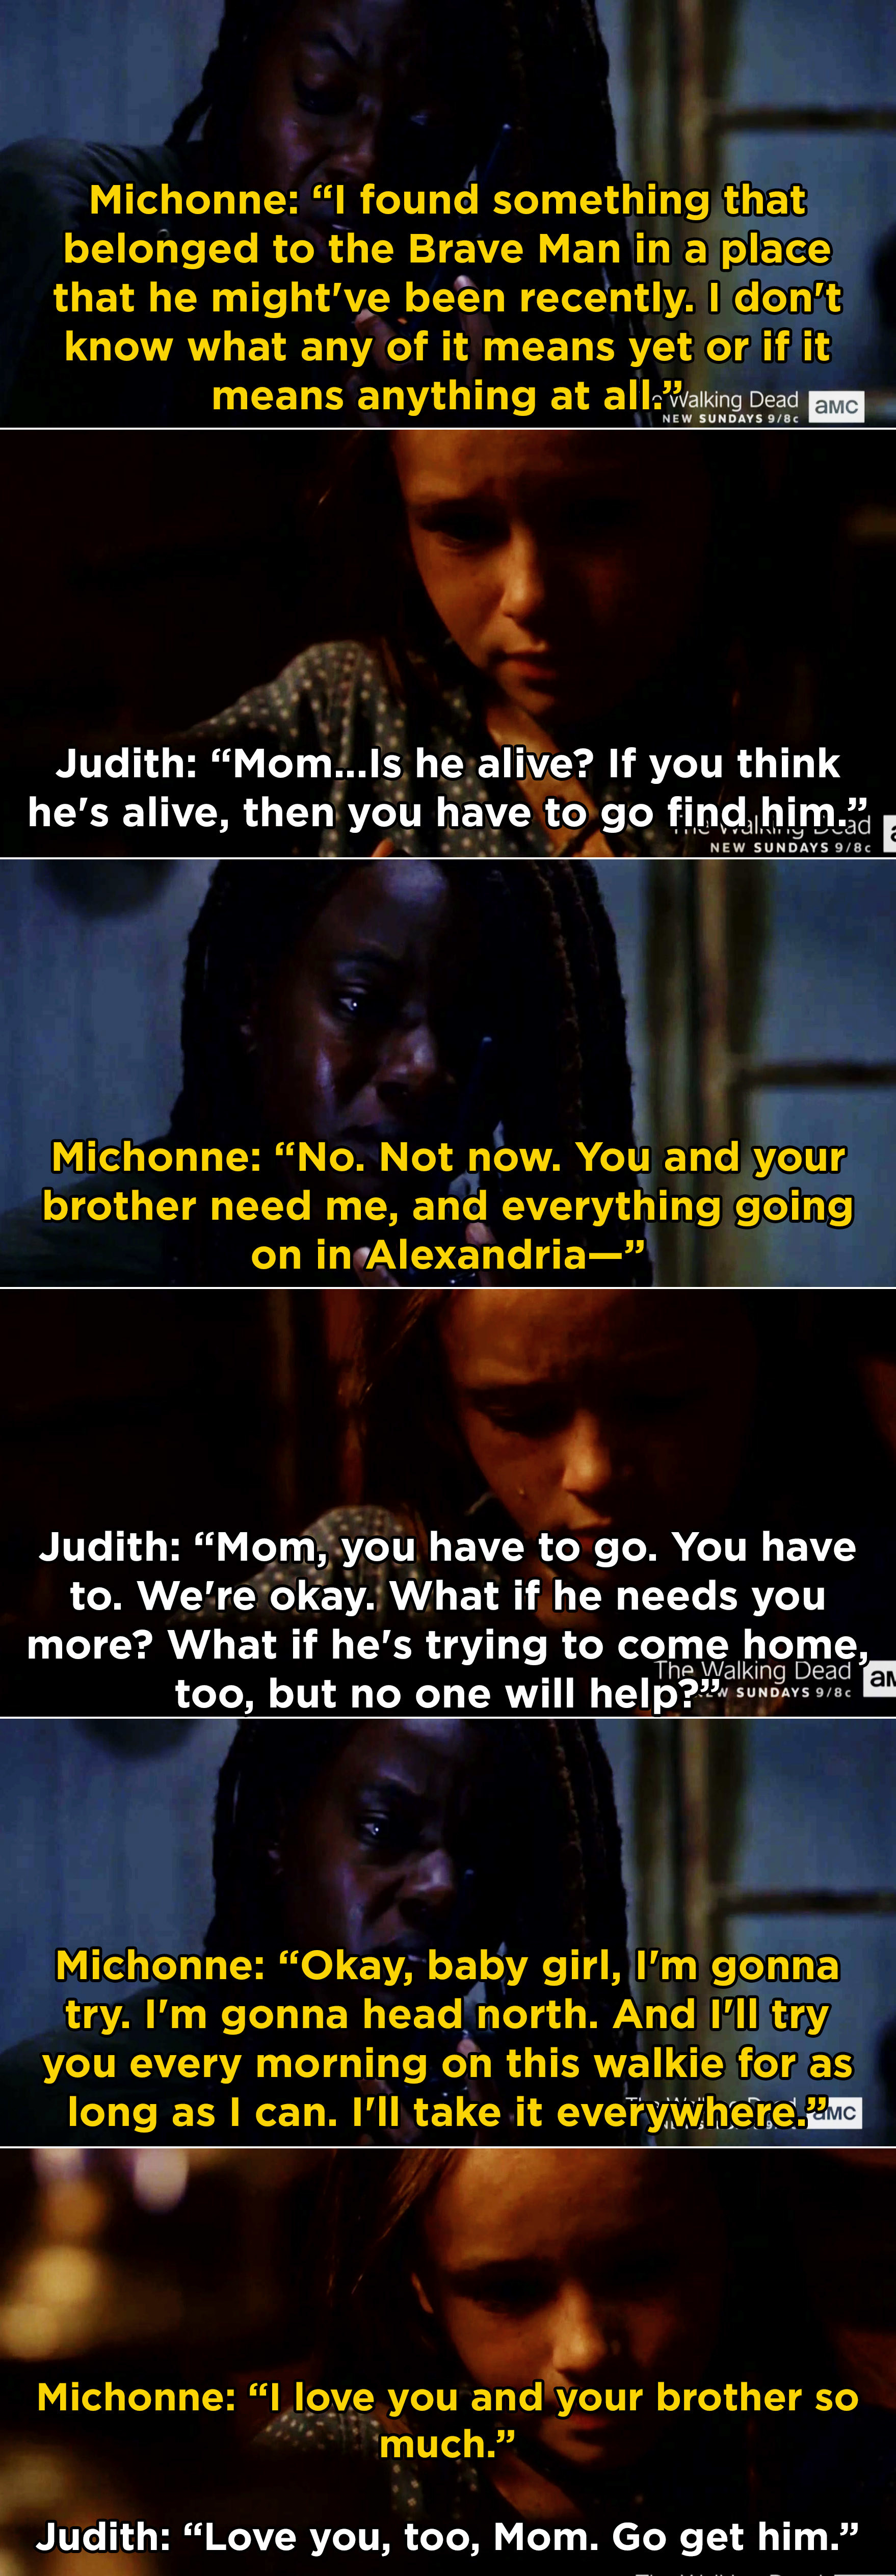 """Judith telling Michonne to go find the """"Brave Man"""" and bring him home"""